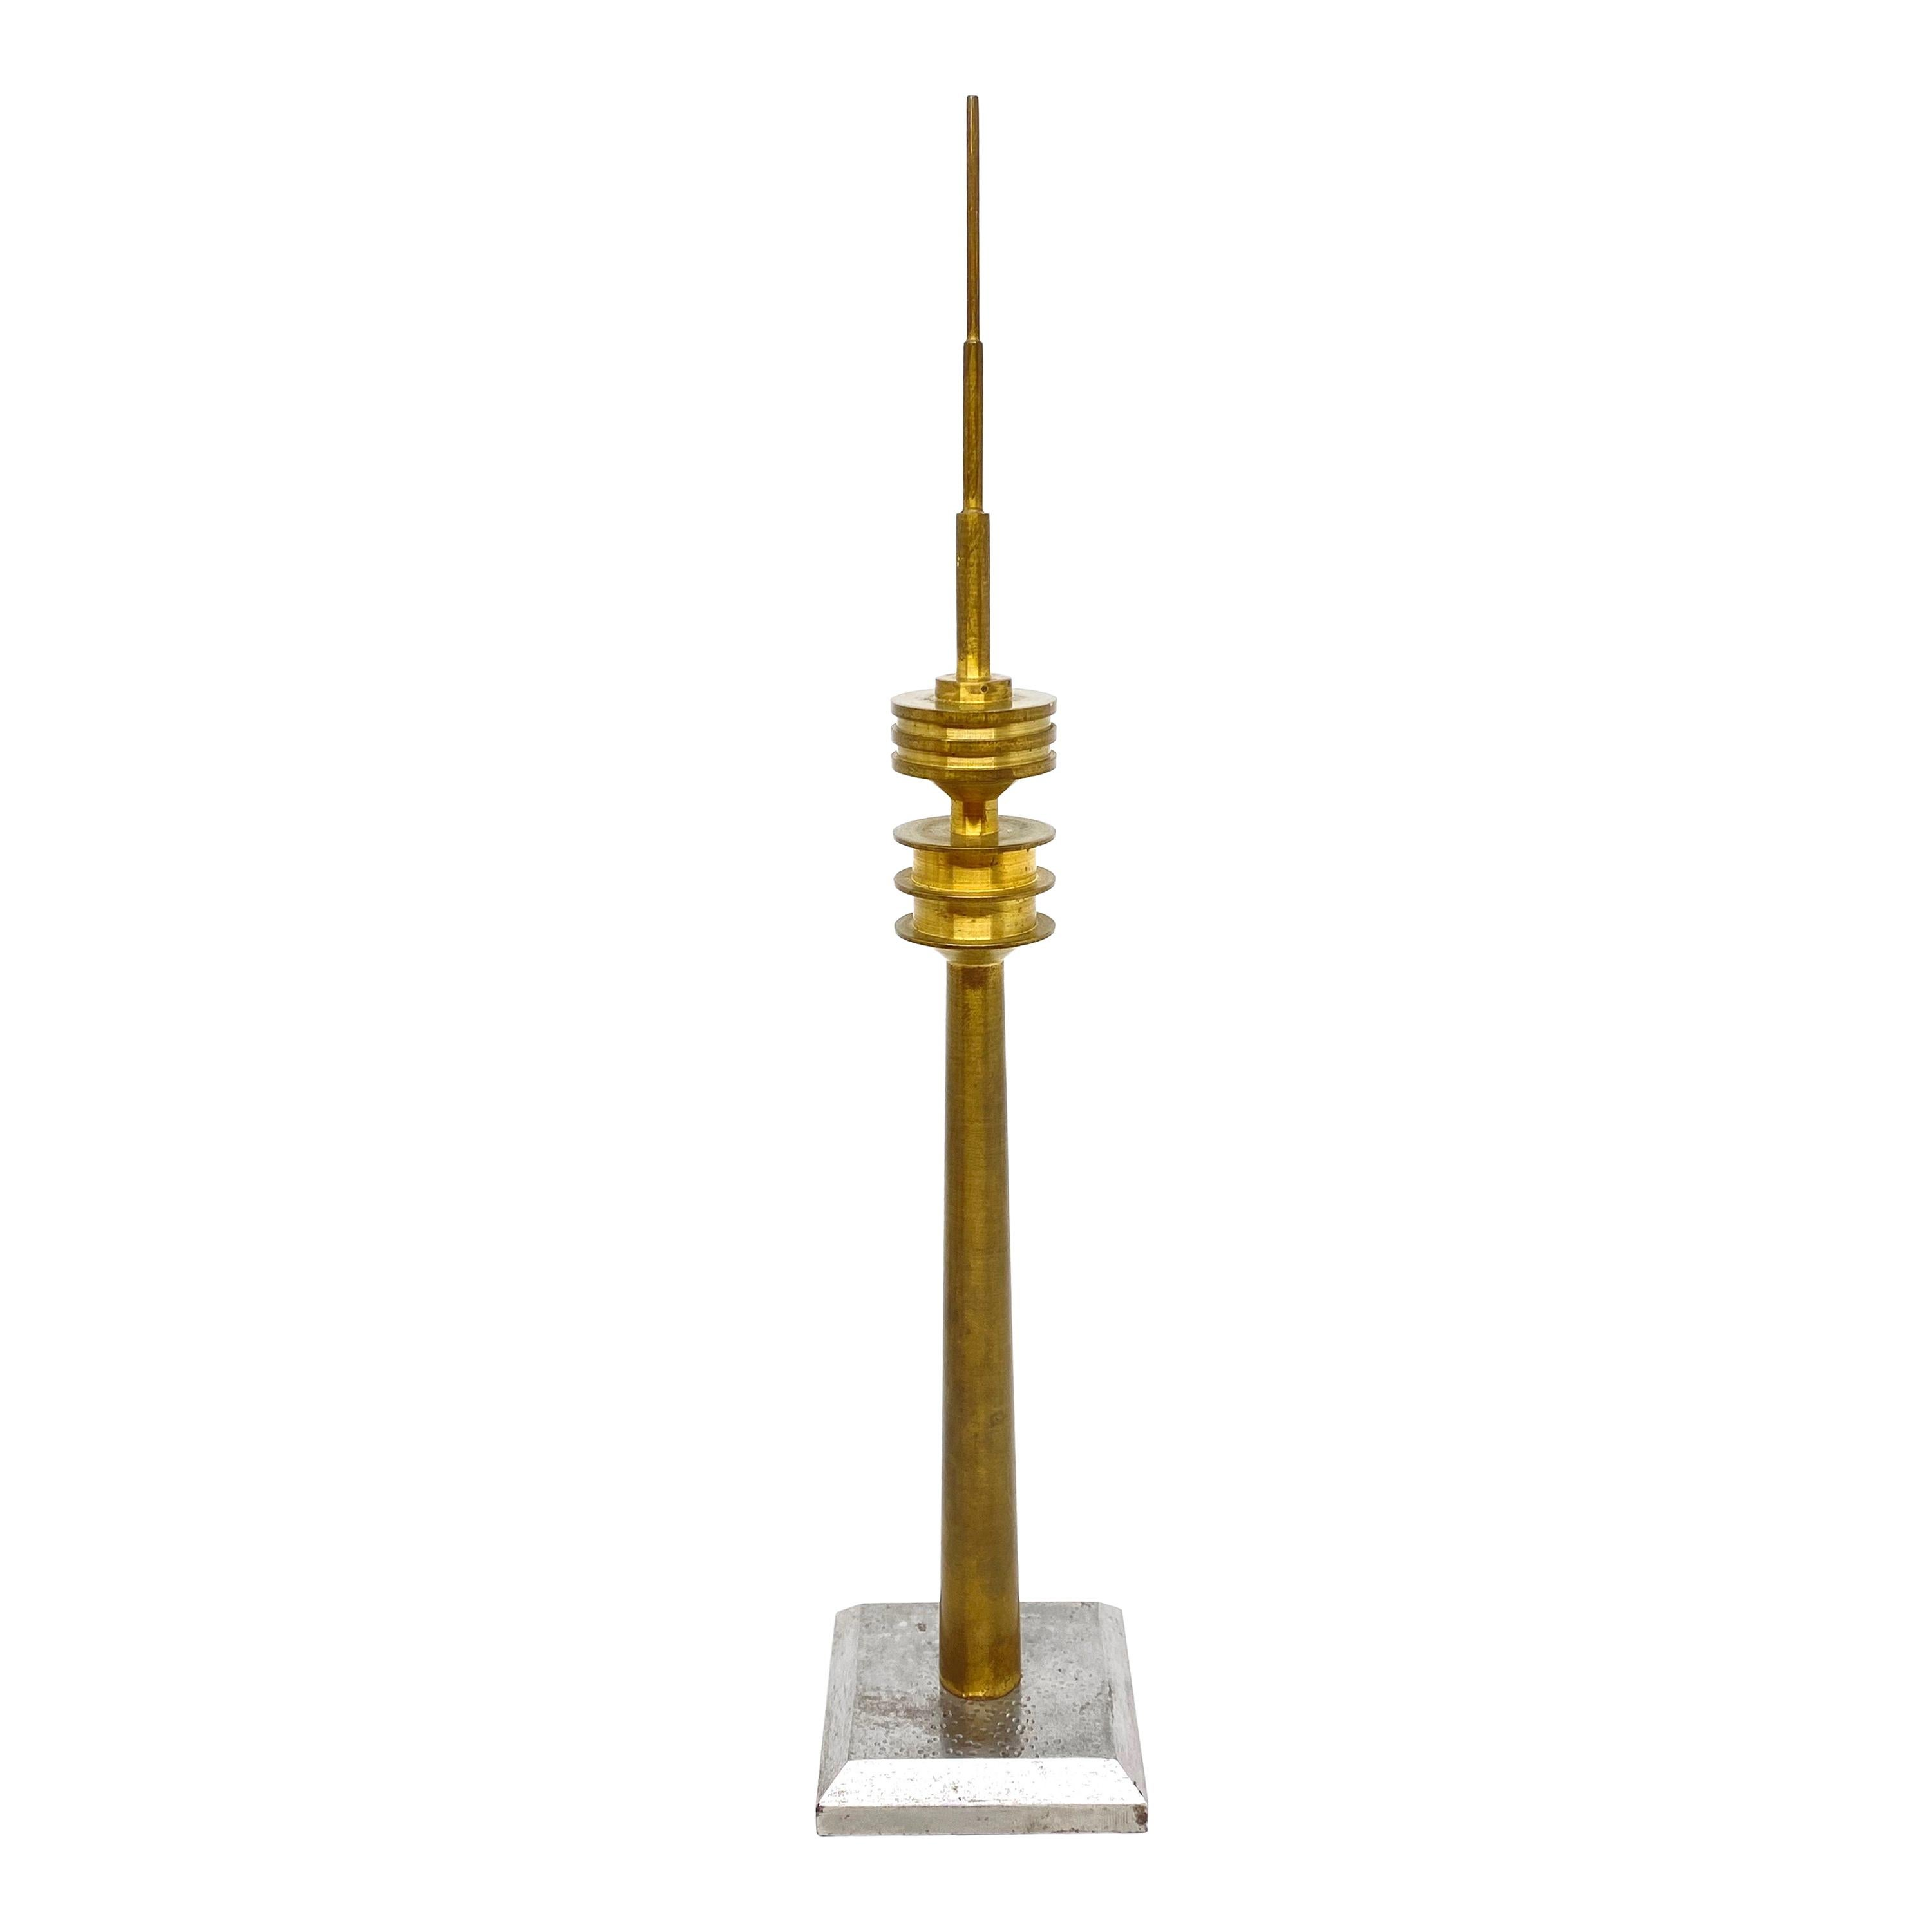 Brass and Metal Munich TV Television Tower Scale Design Model, 1970s